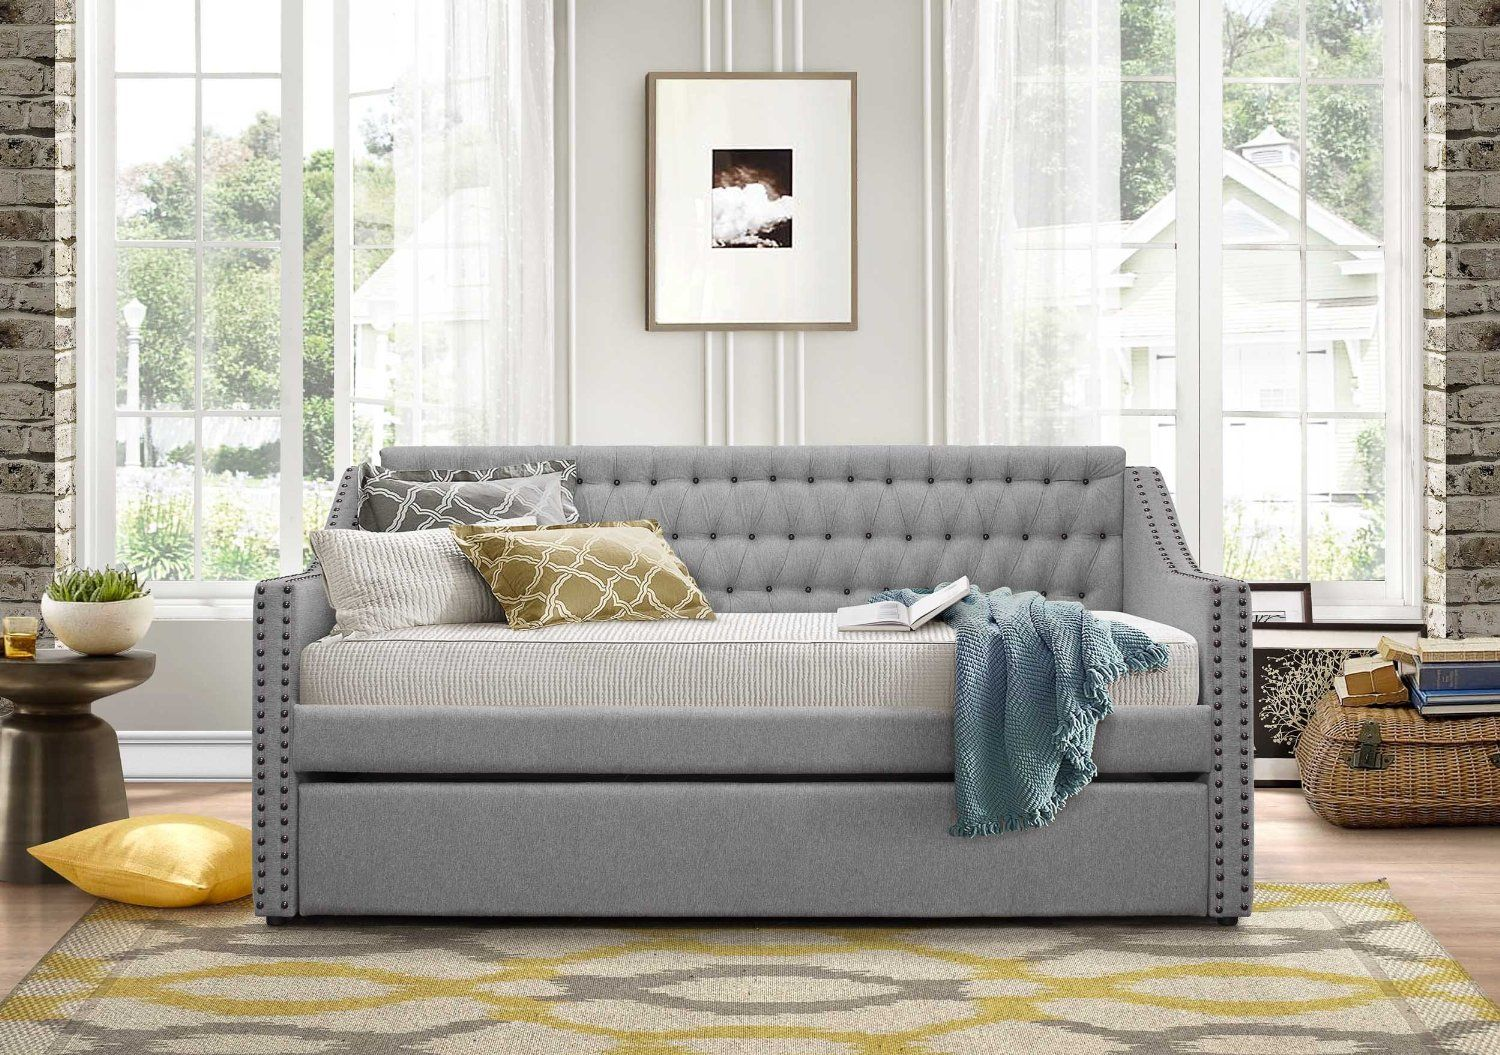 Amazon Com Homelegance Sleigh Daybed With Tufted Back Rest And